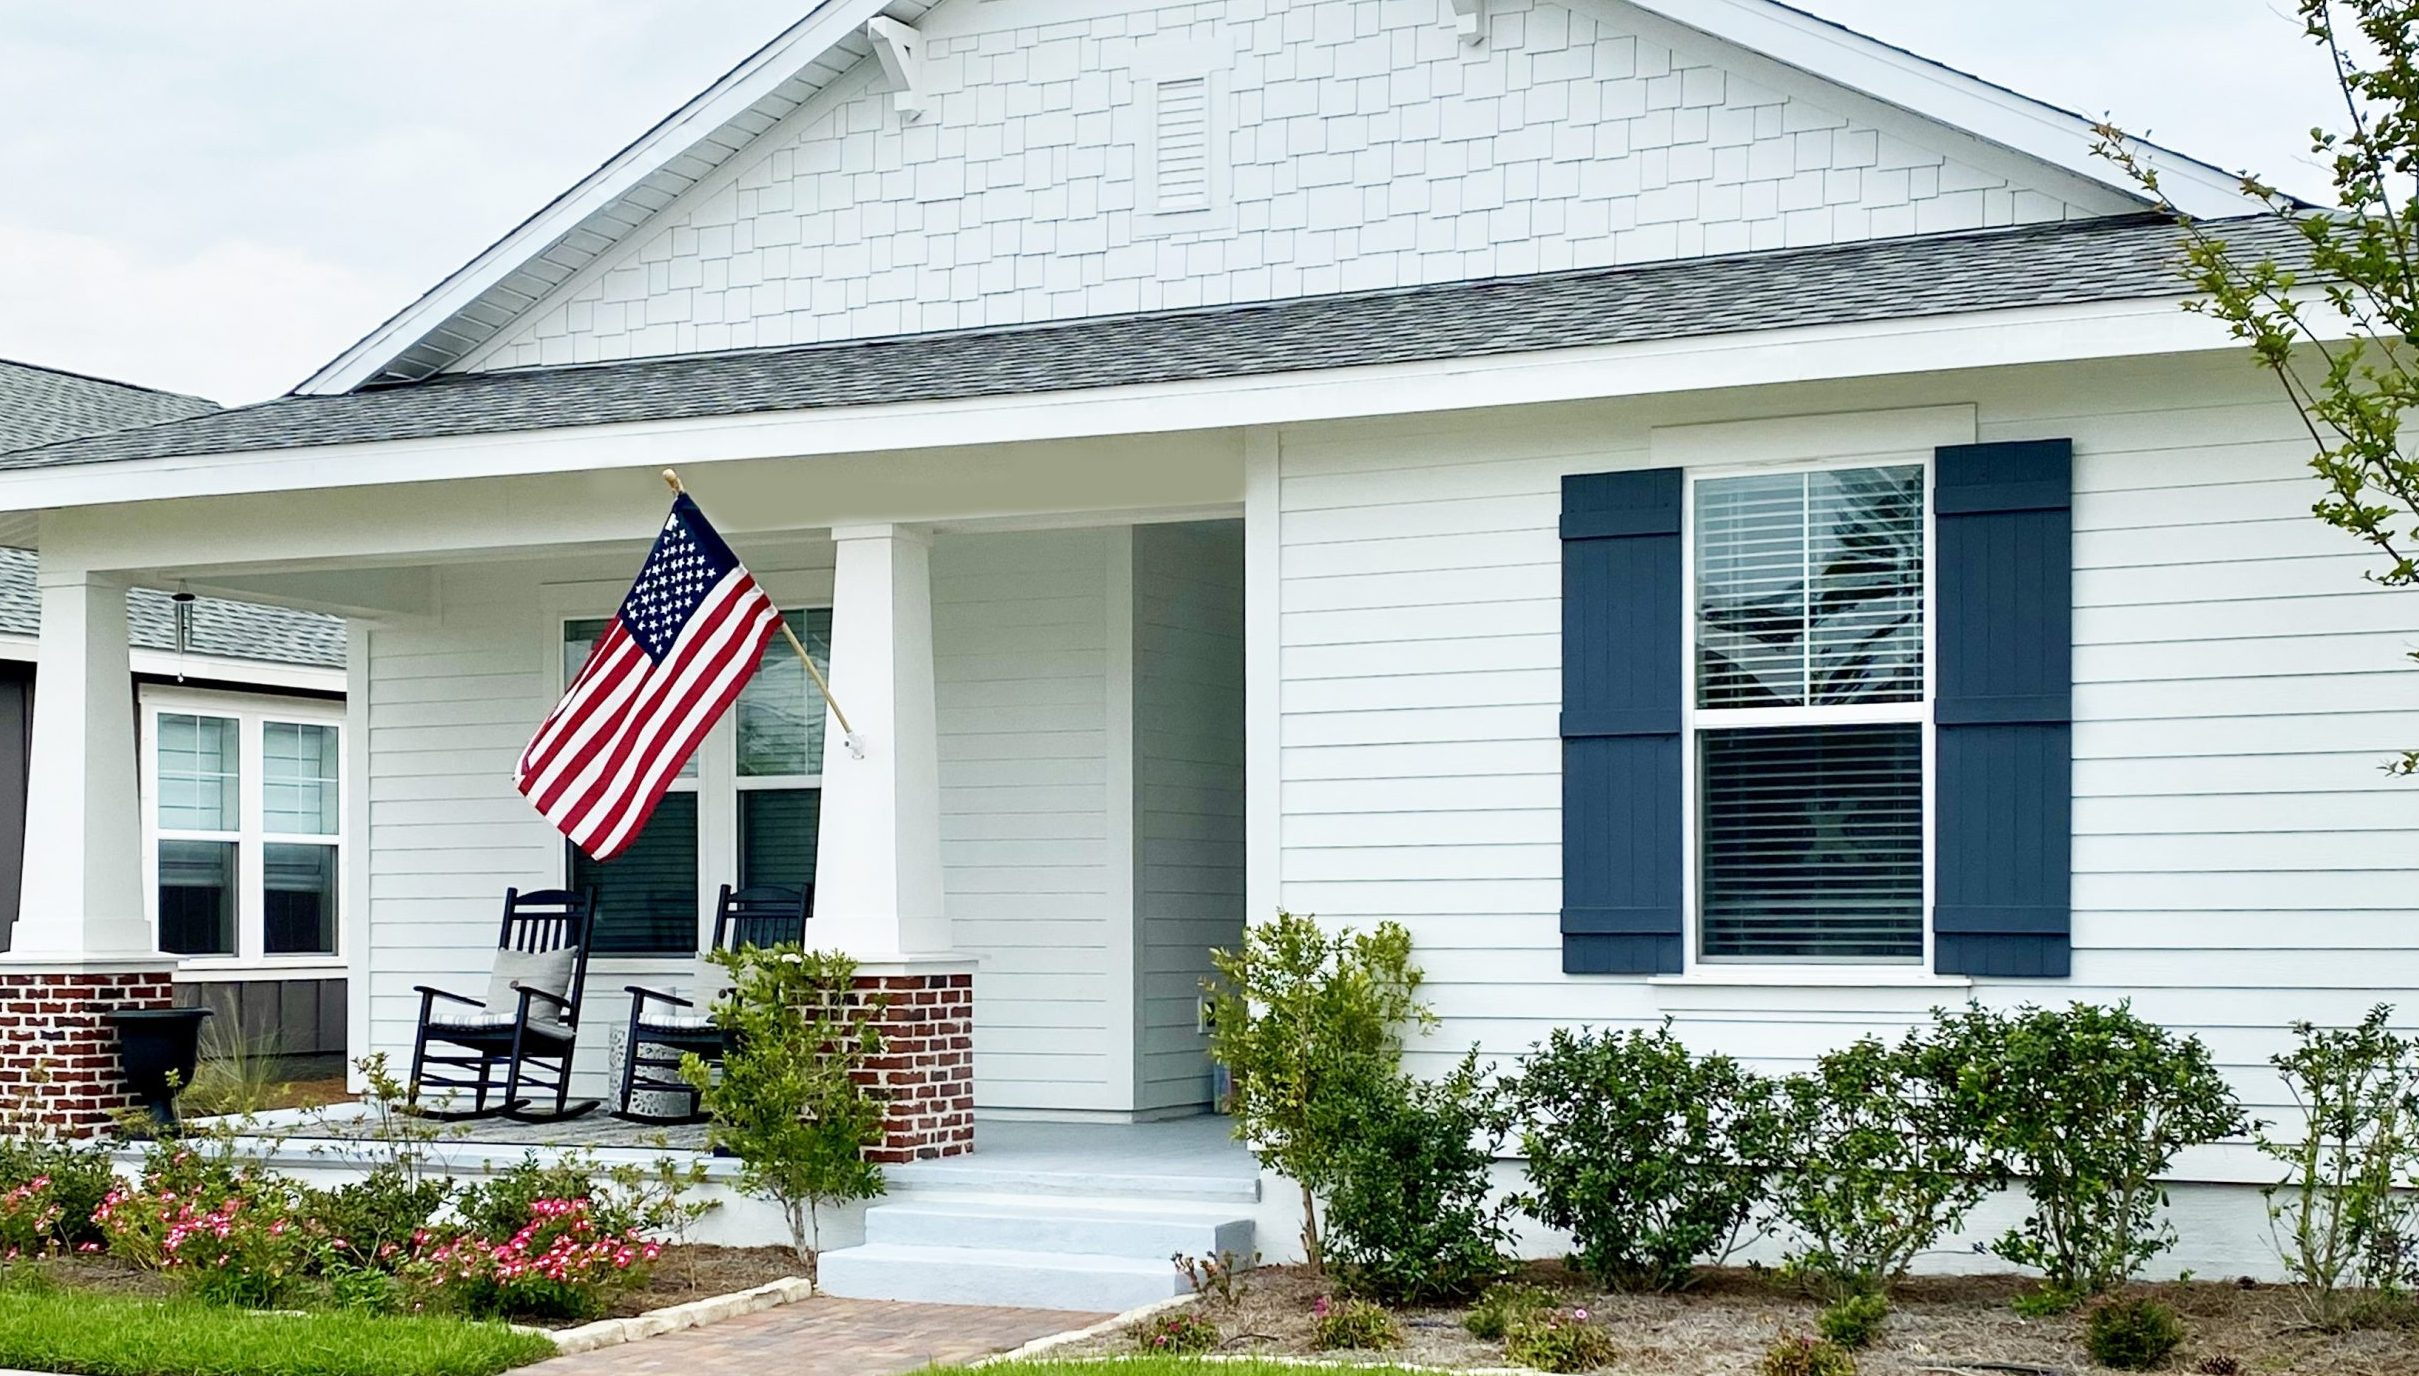 house with American flag out front